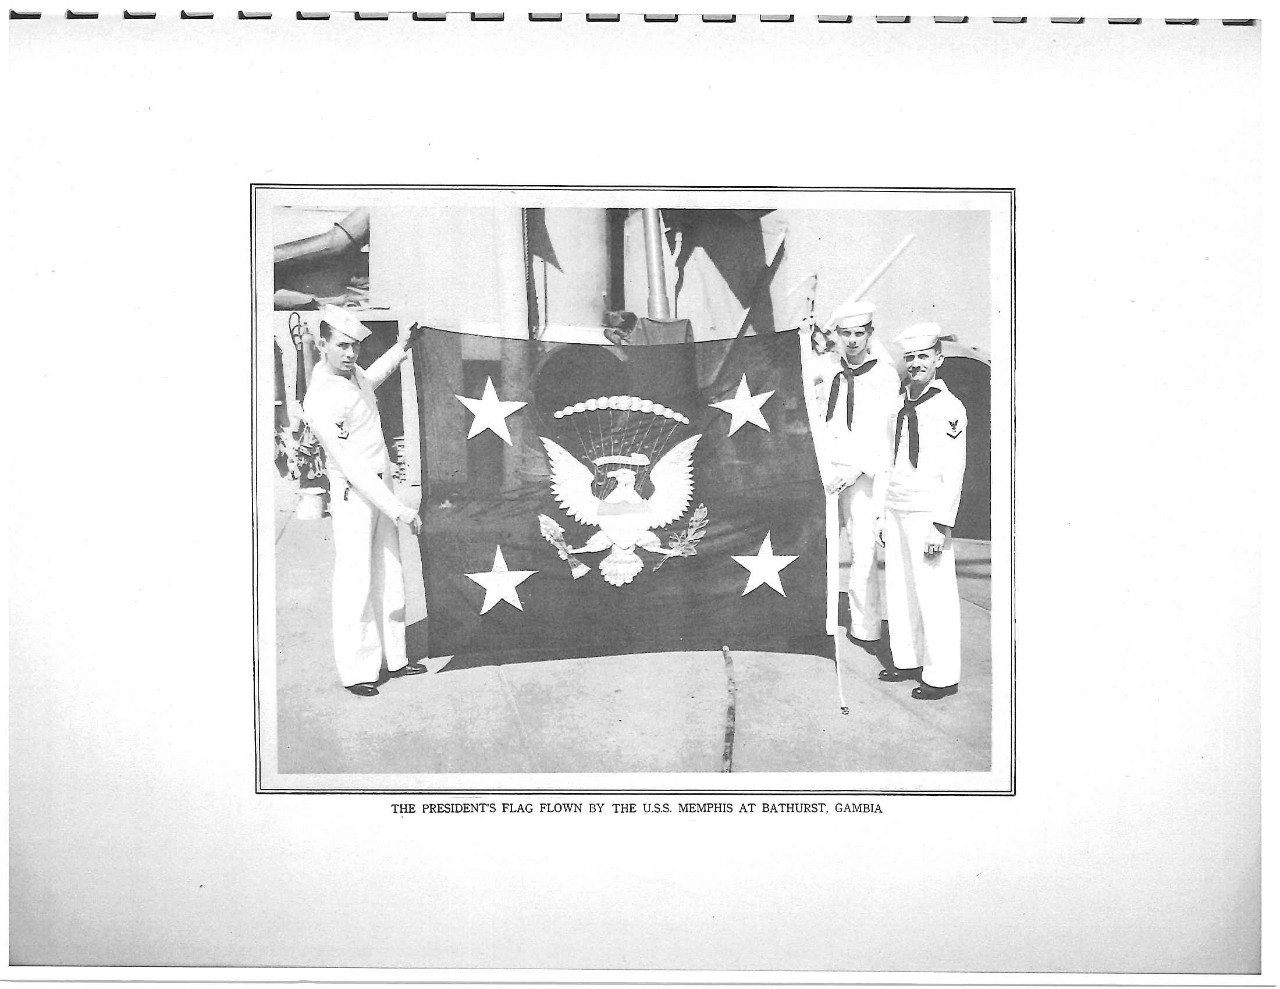 President's flag flown by the USS Memphis at Bathurst, Gambia